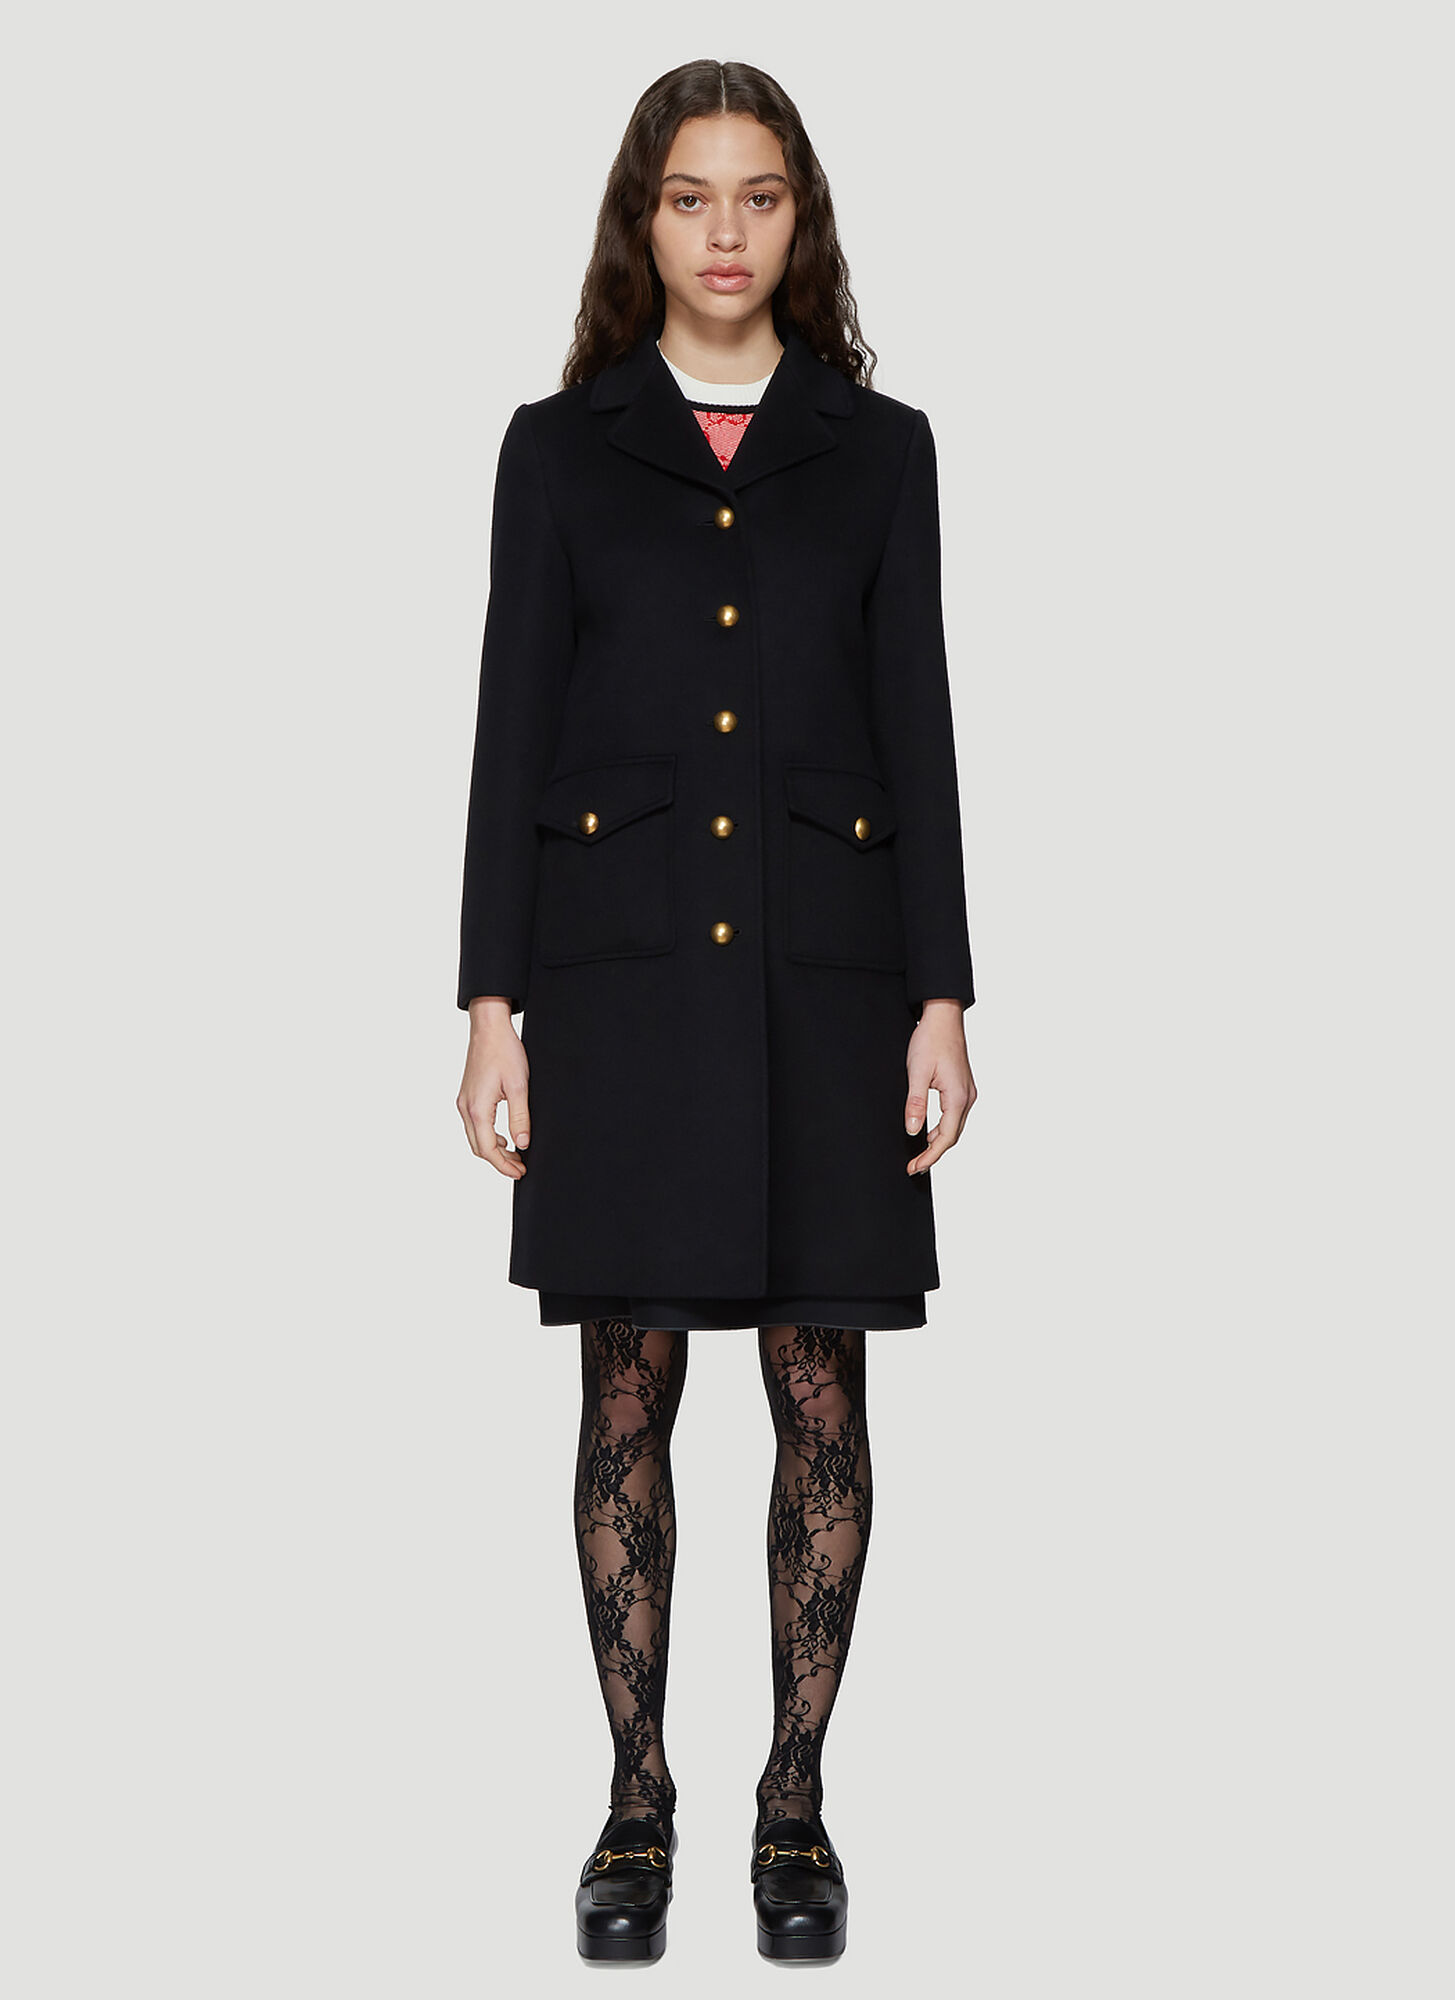 Gucci Classic Tailored Wool Coat in Black